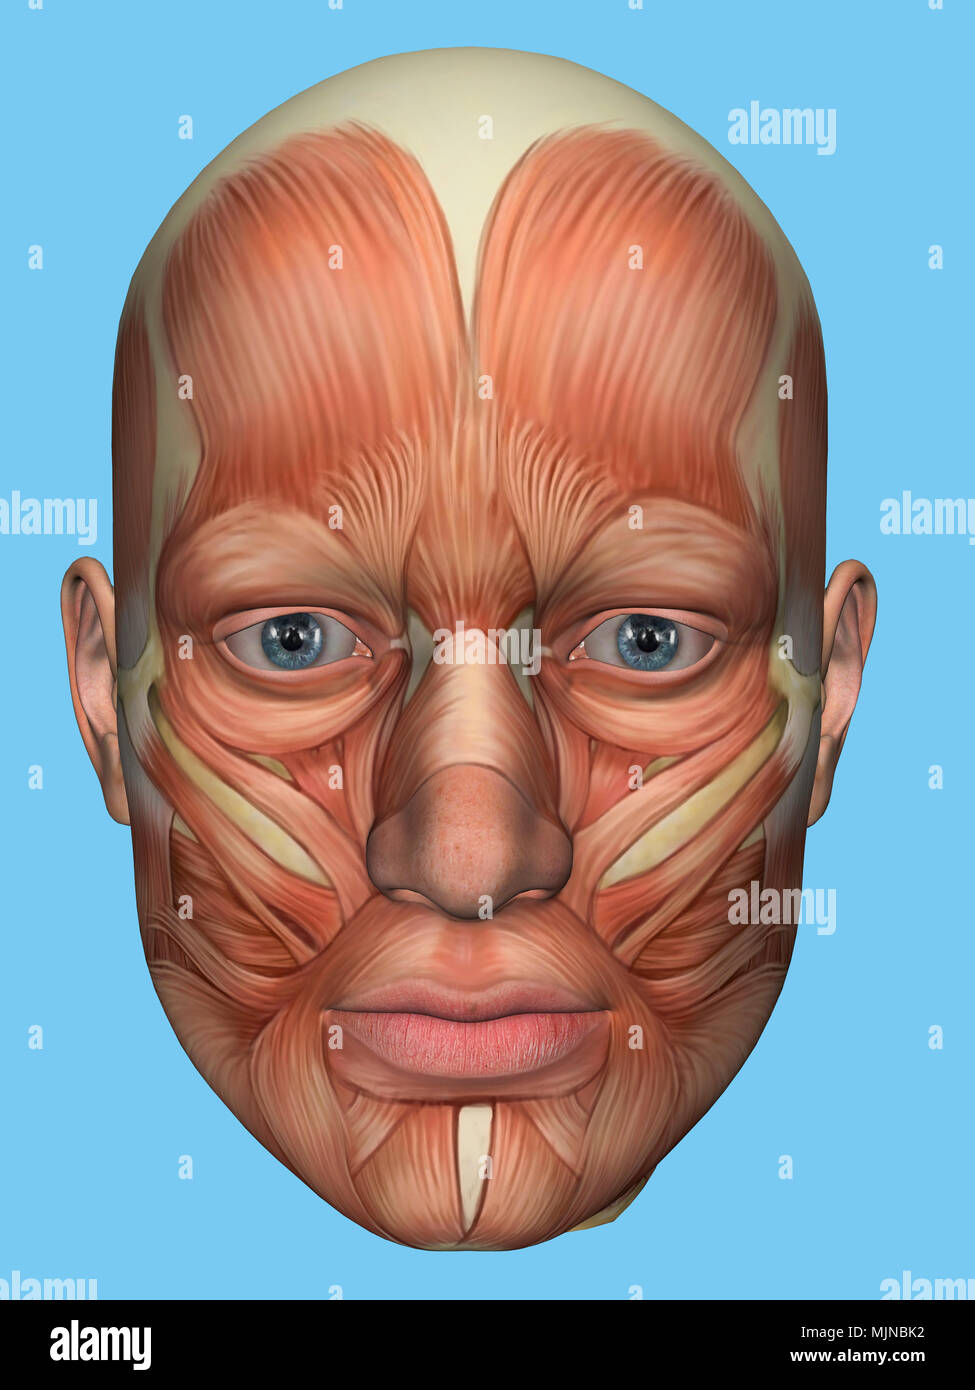 Anatomy front view of major face muscles of a man Stock Photo ...